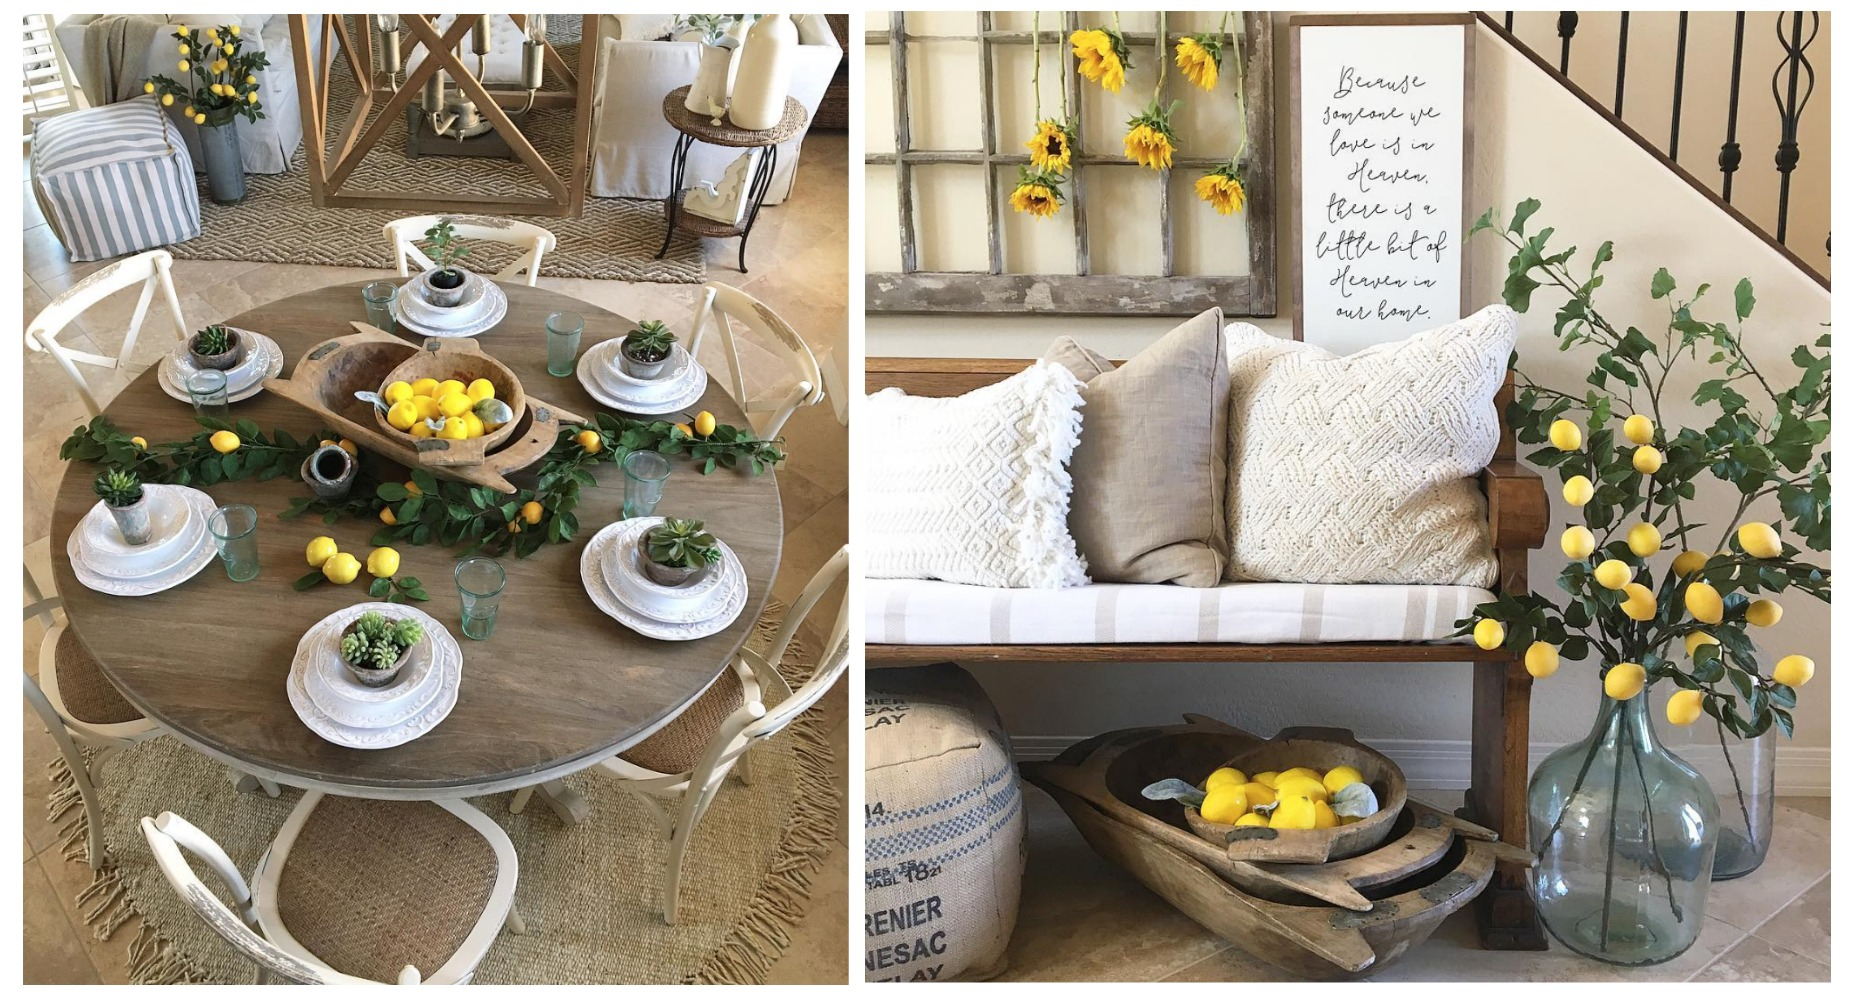 Liz of Desert Decor has the love for lemons too y'all! Check out her Instagram { HERE}  for more lemon inspo!